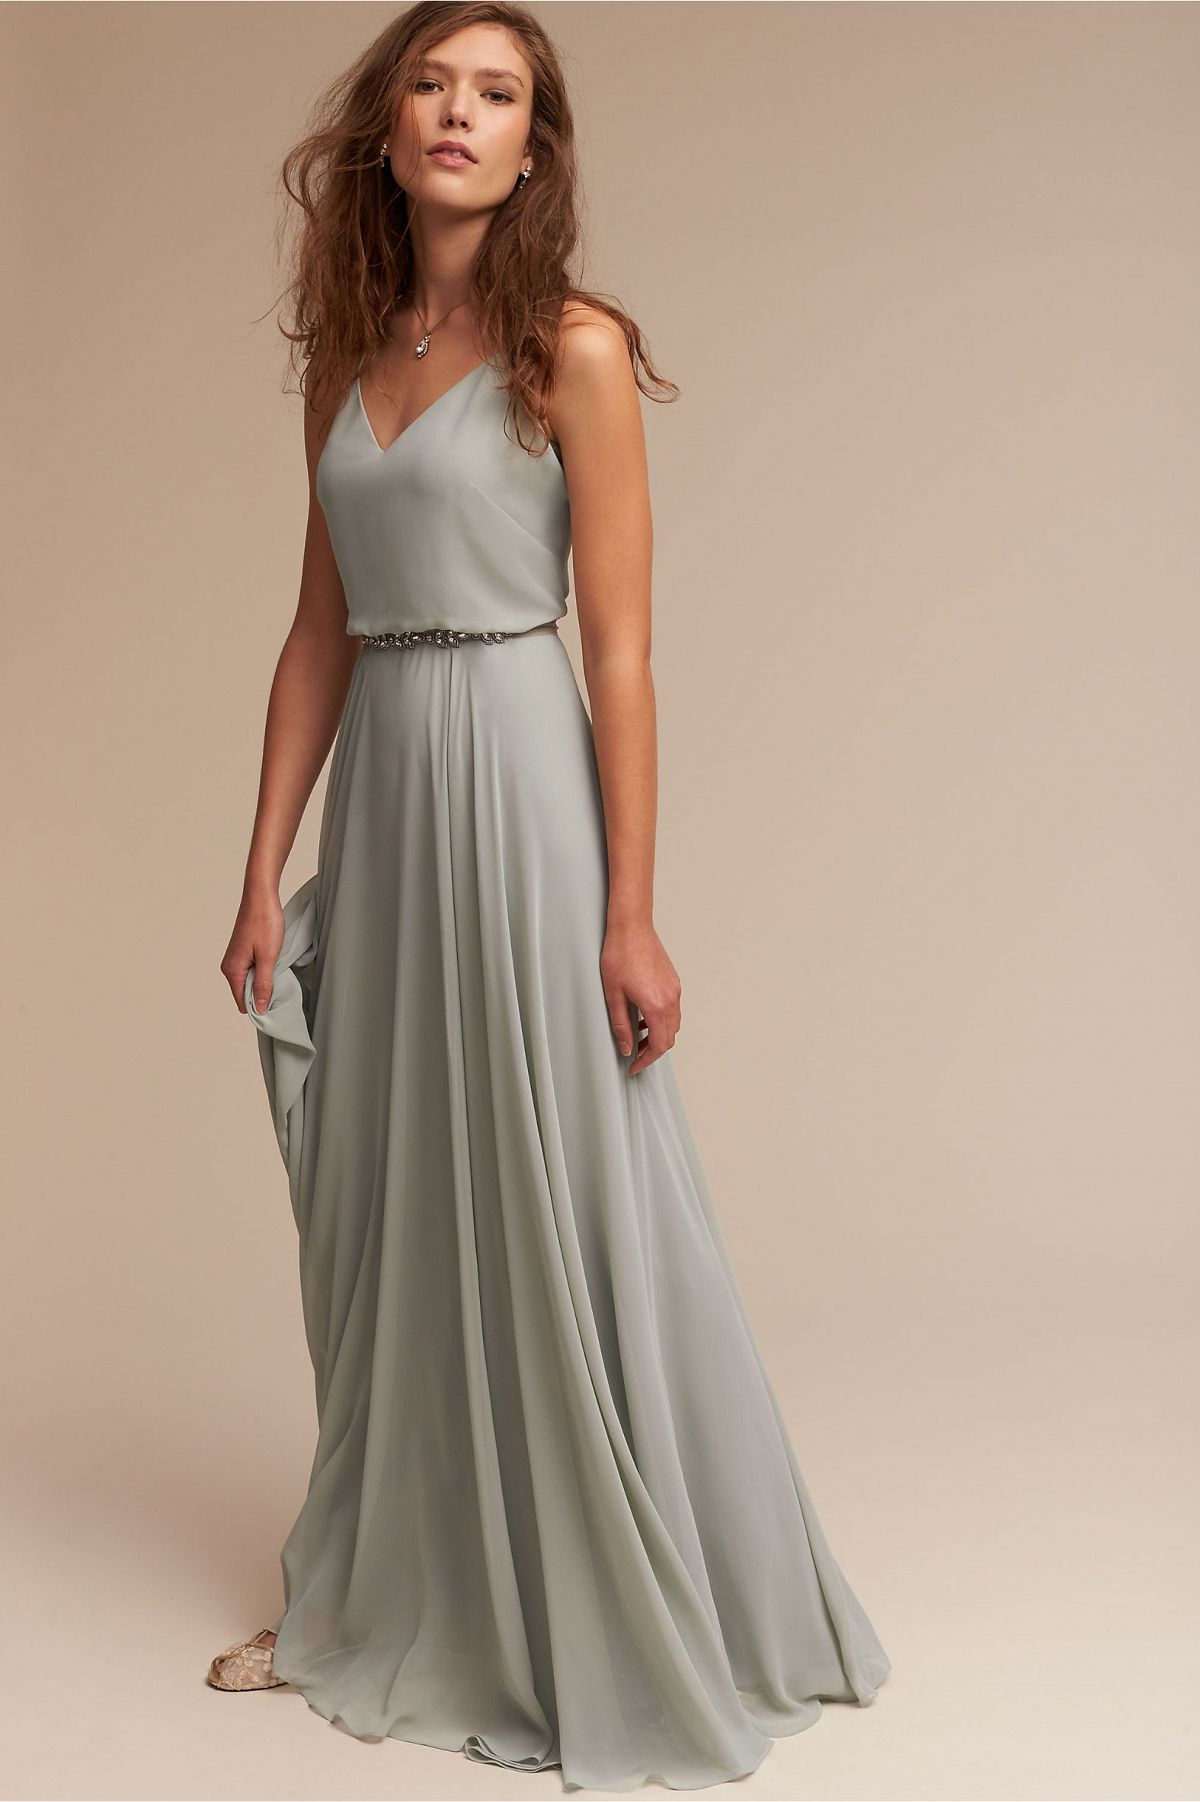 10 bridesmaid dresses you can wear again wedding sparrow 10 bridesmaid dresses you can wear again wedding sparrow bridesmaid dresses sage greenbridesmaid ombrellifo Image collections